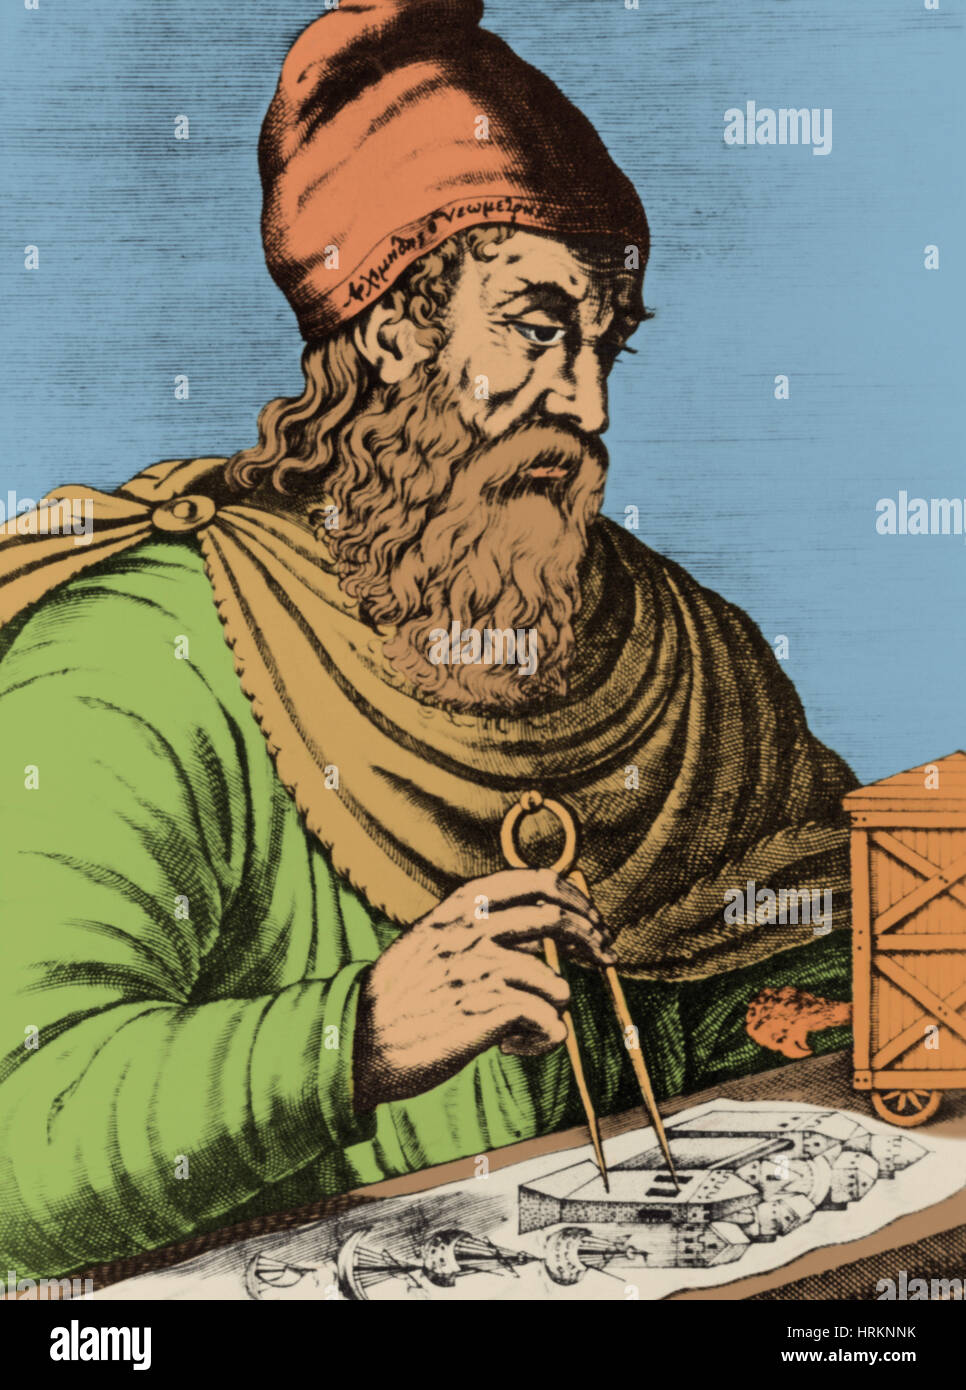 Archimedes, Ancient Greek Polymath - Stock Image